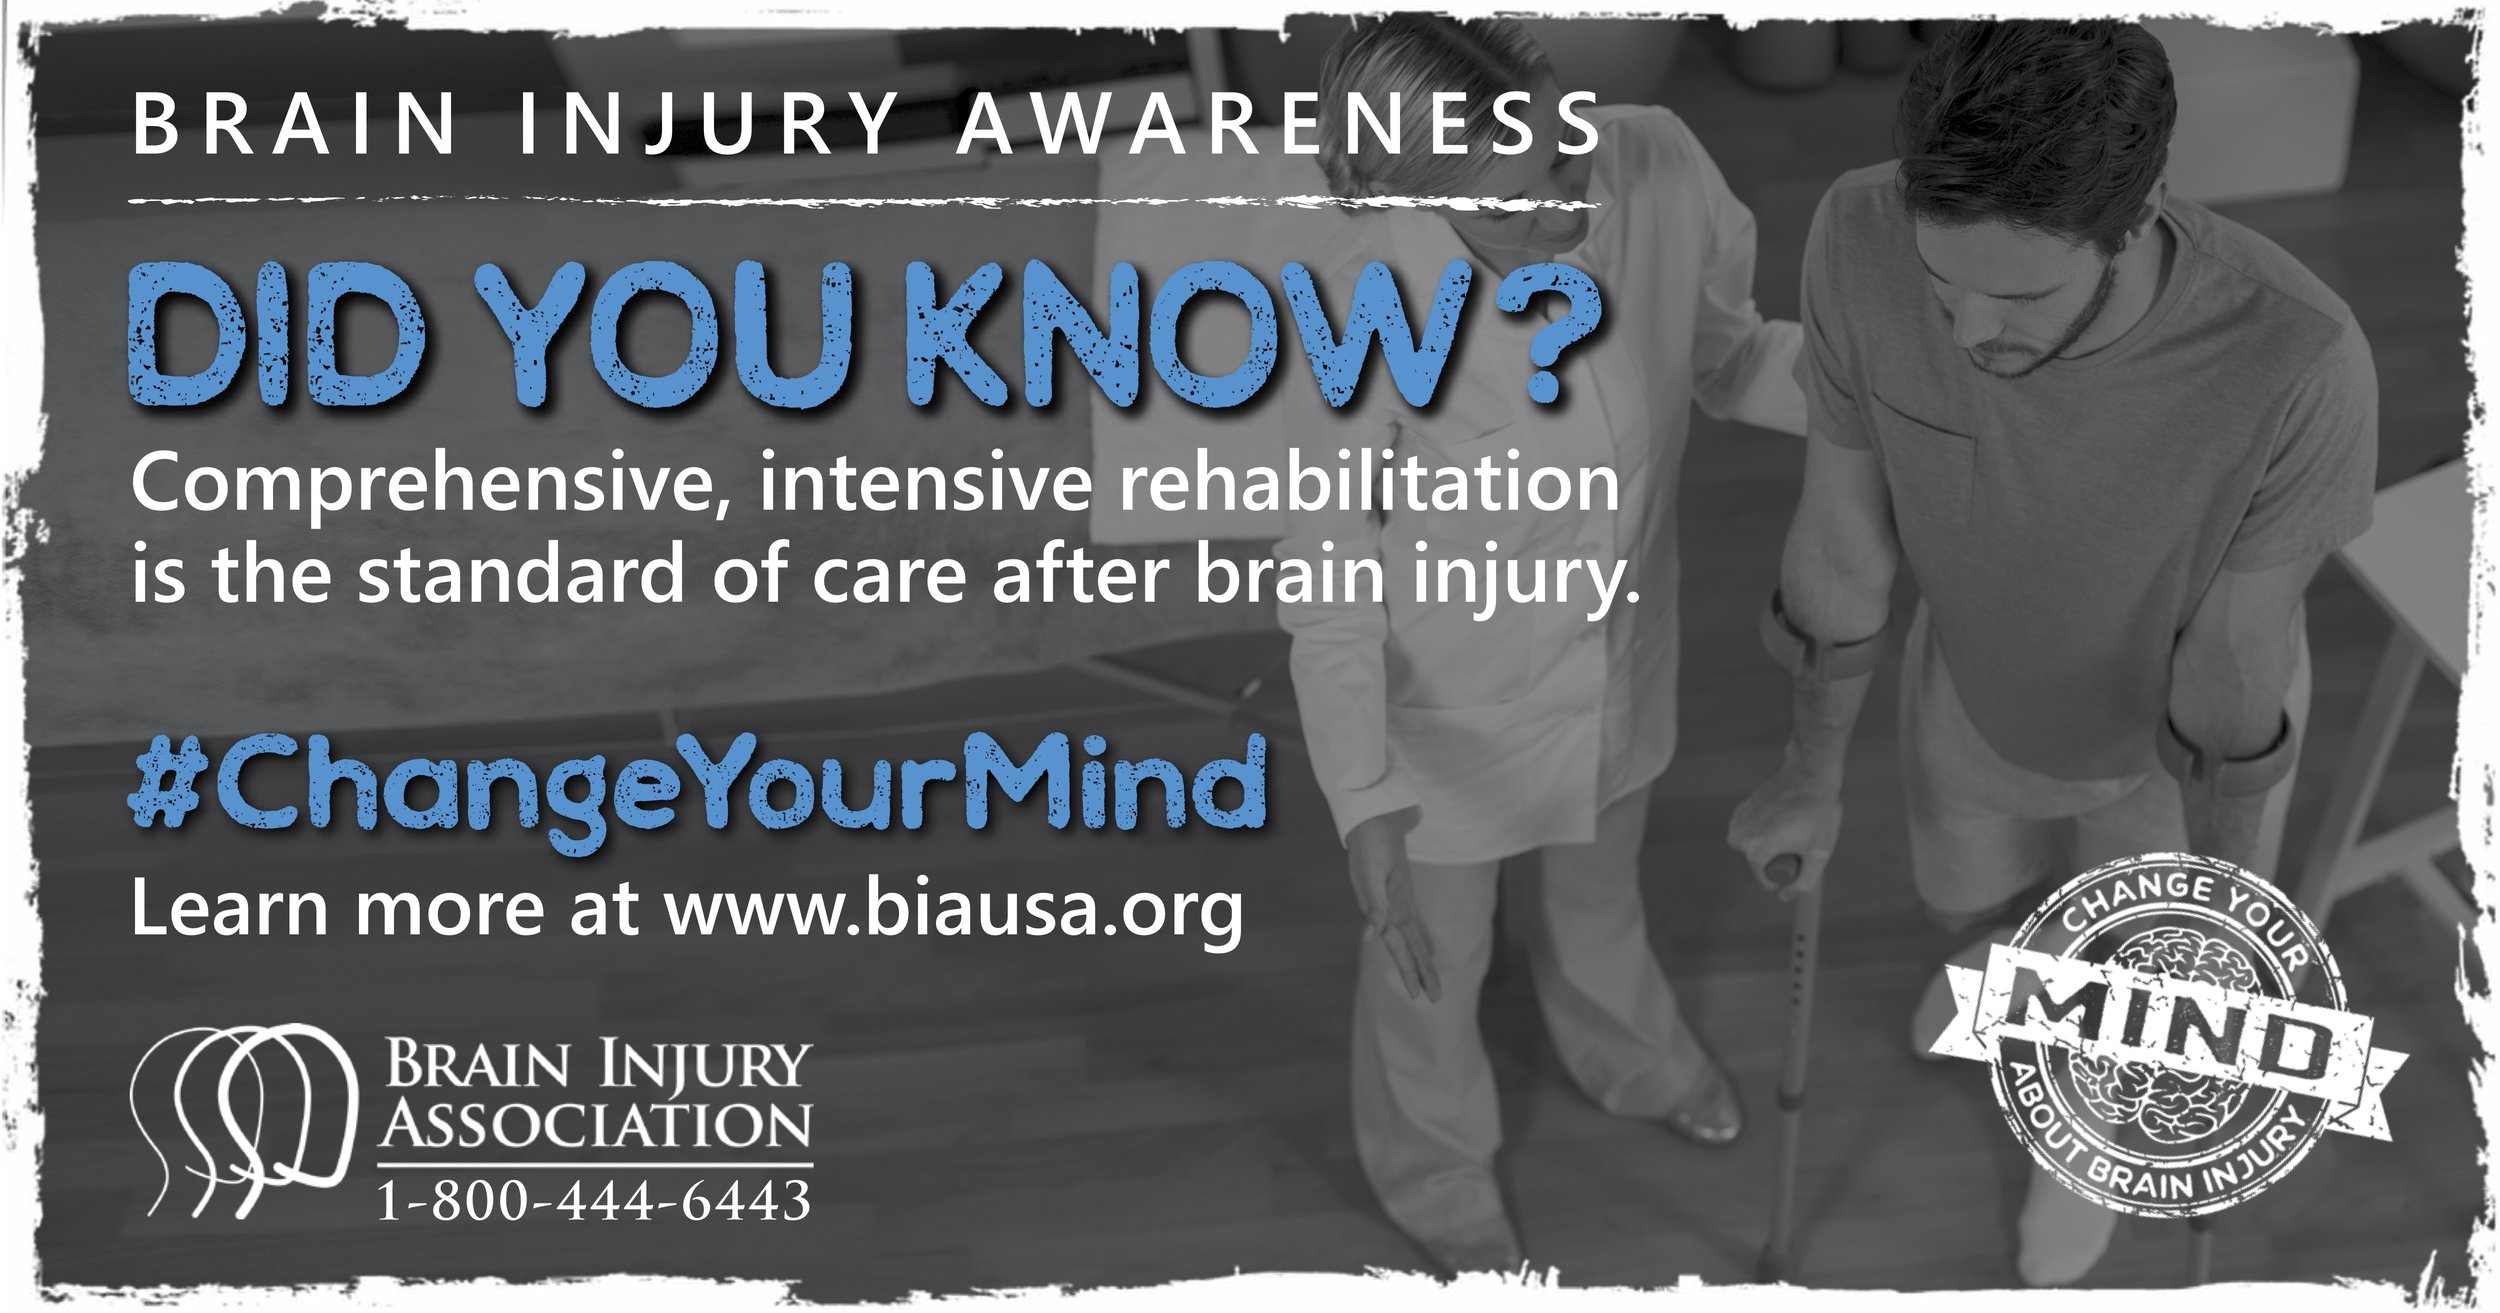 change-your-mind-brain-injury-awareness-month-sianna-muscles-in-motion-massage-therapy-treatment-dearborn-heights-michigan.jpg